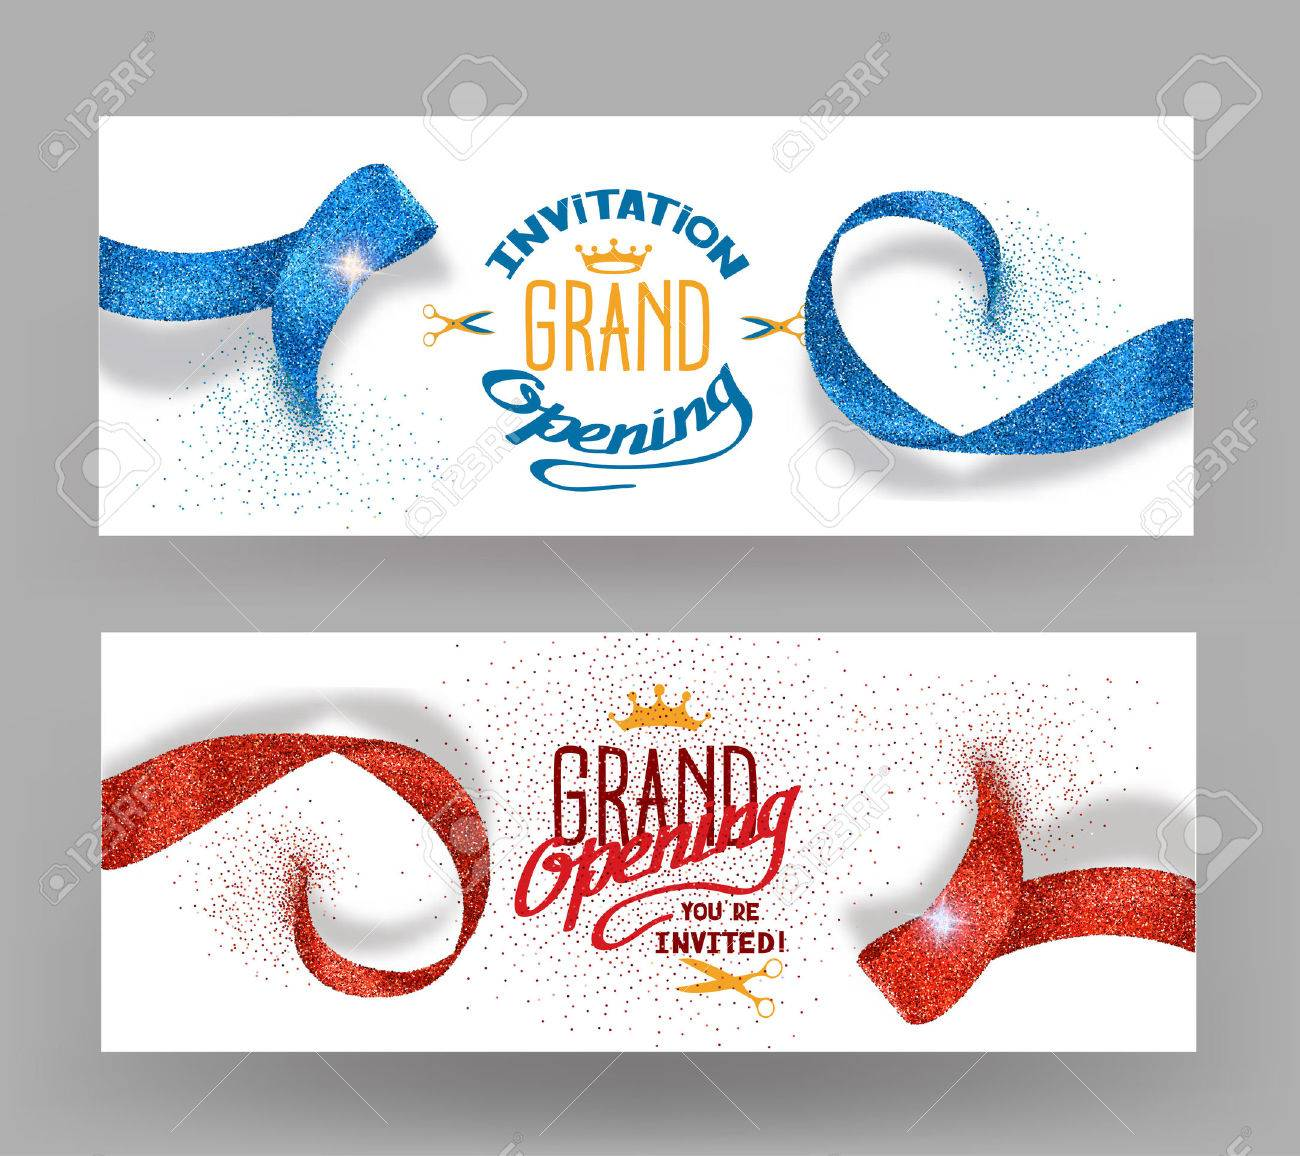 Grand opening banners with abstract red and blue ribbons - 55939154